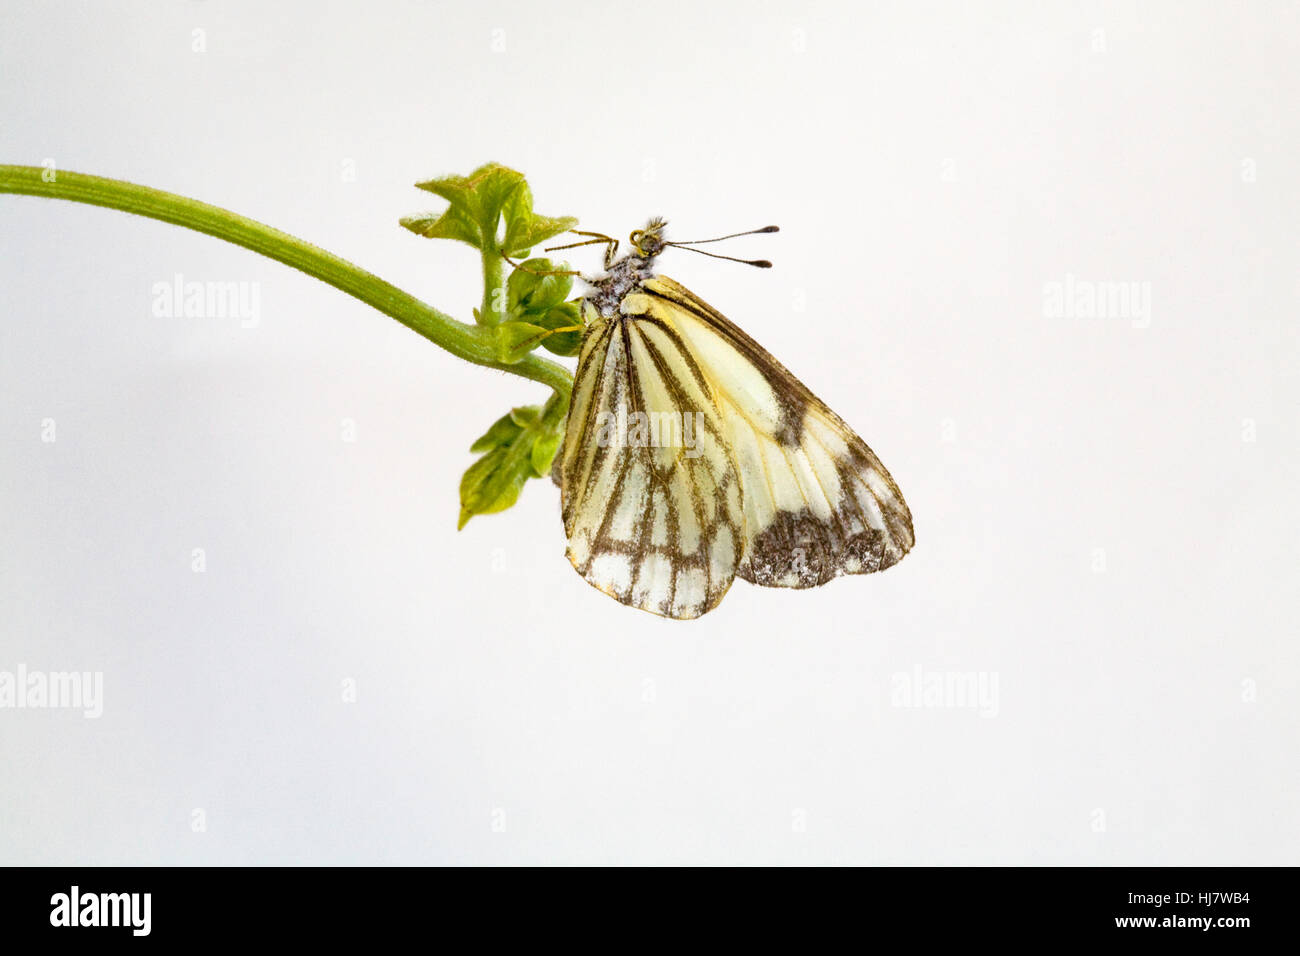 A white pine butterfly, Neophasia menapia, landed on a vine. - Stock Image